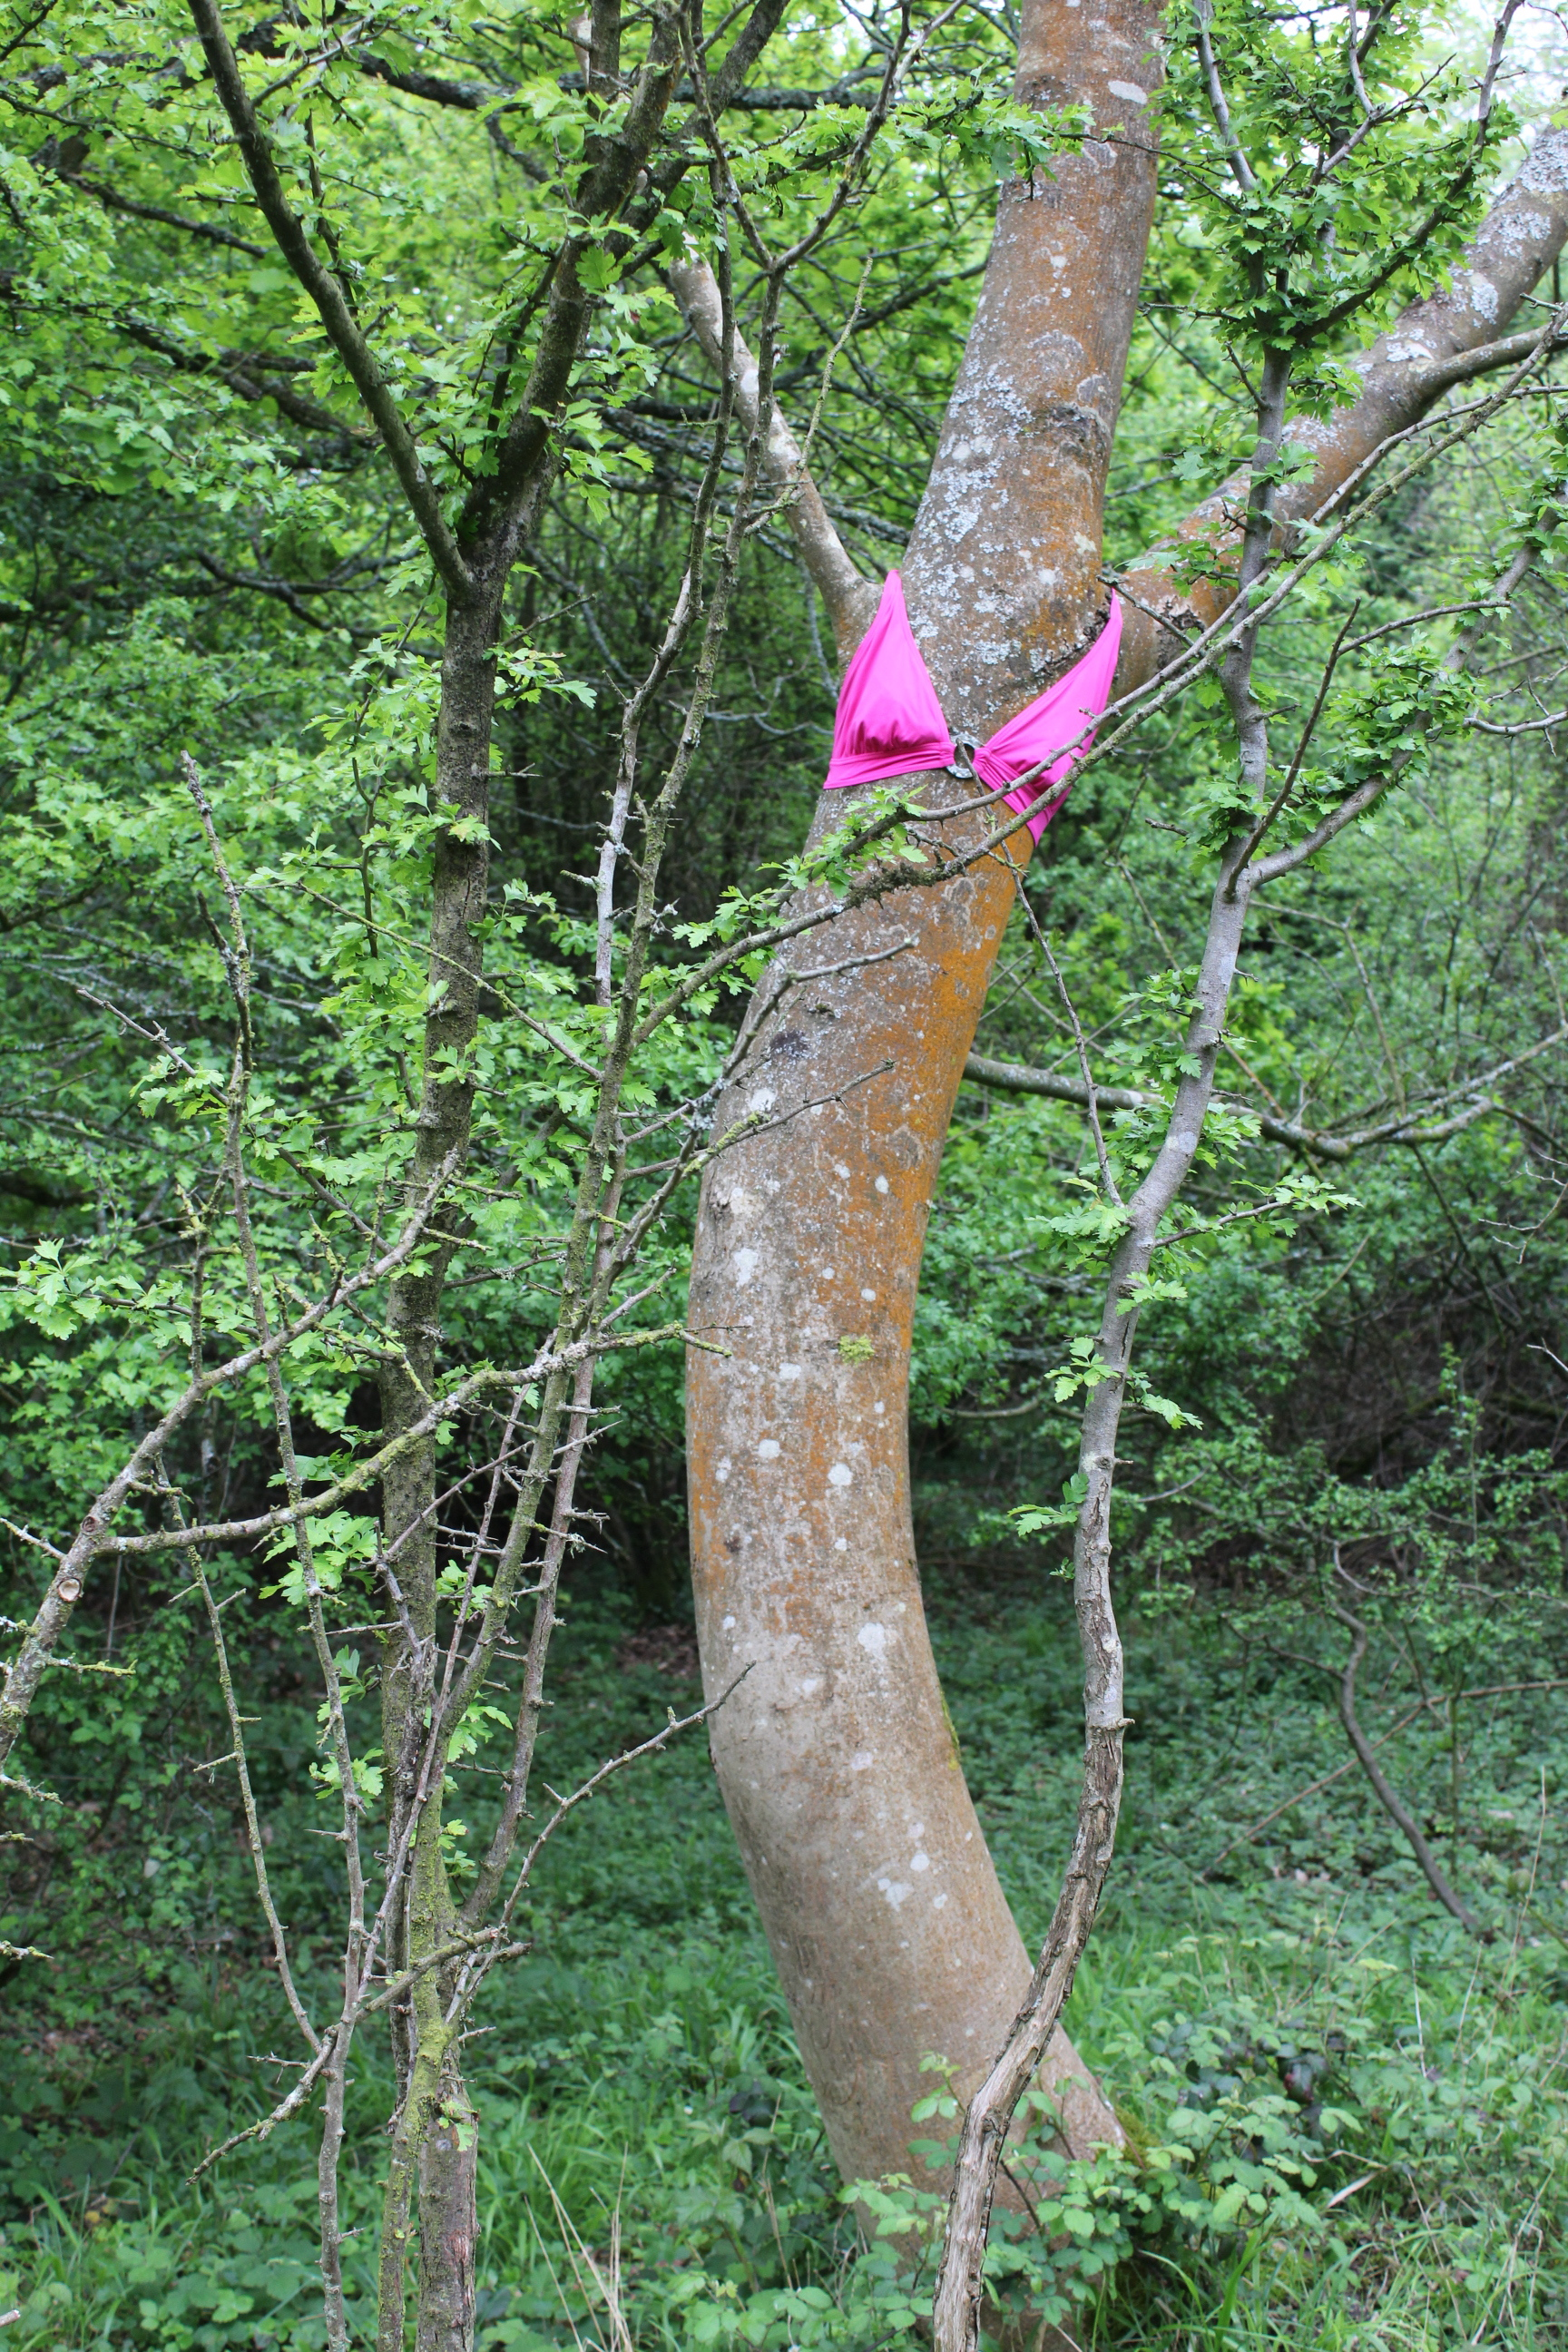 'I clothe the forest with my thoughts and a hot pink bikini top'